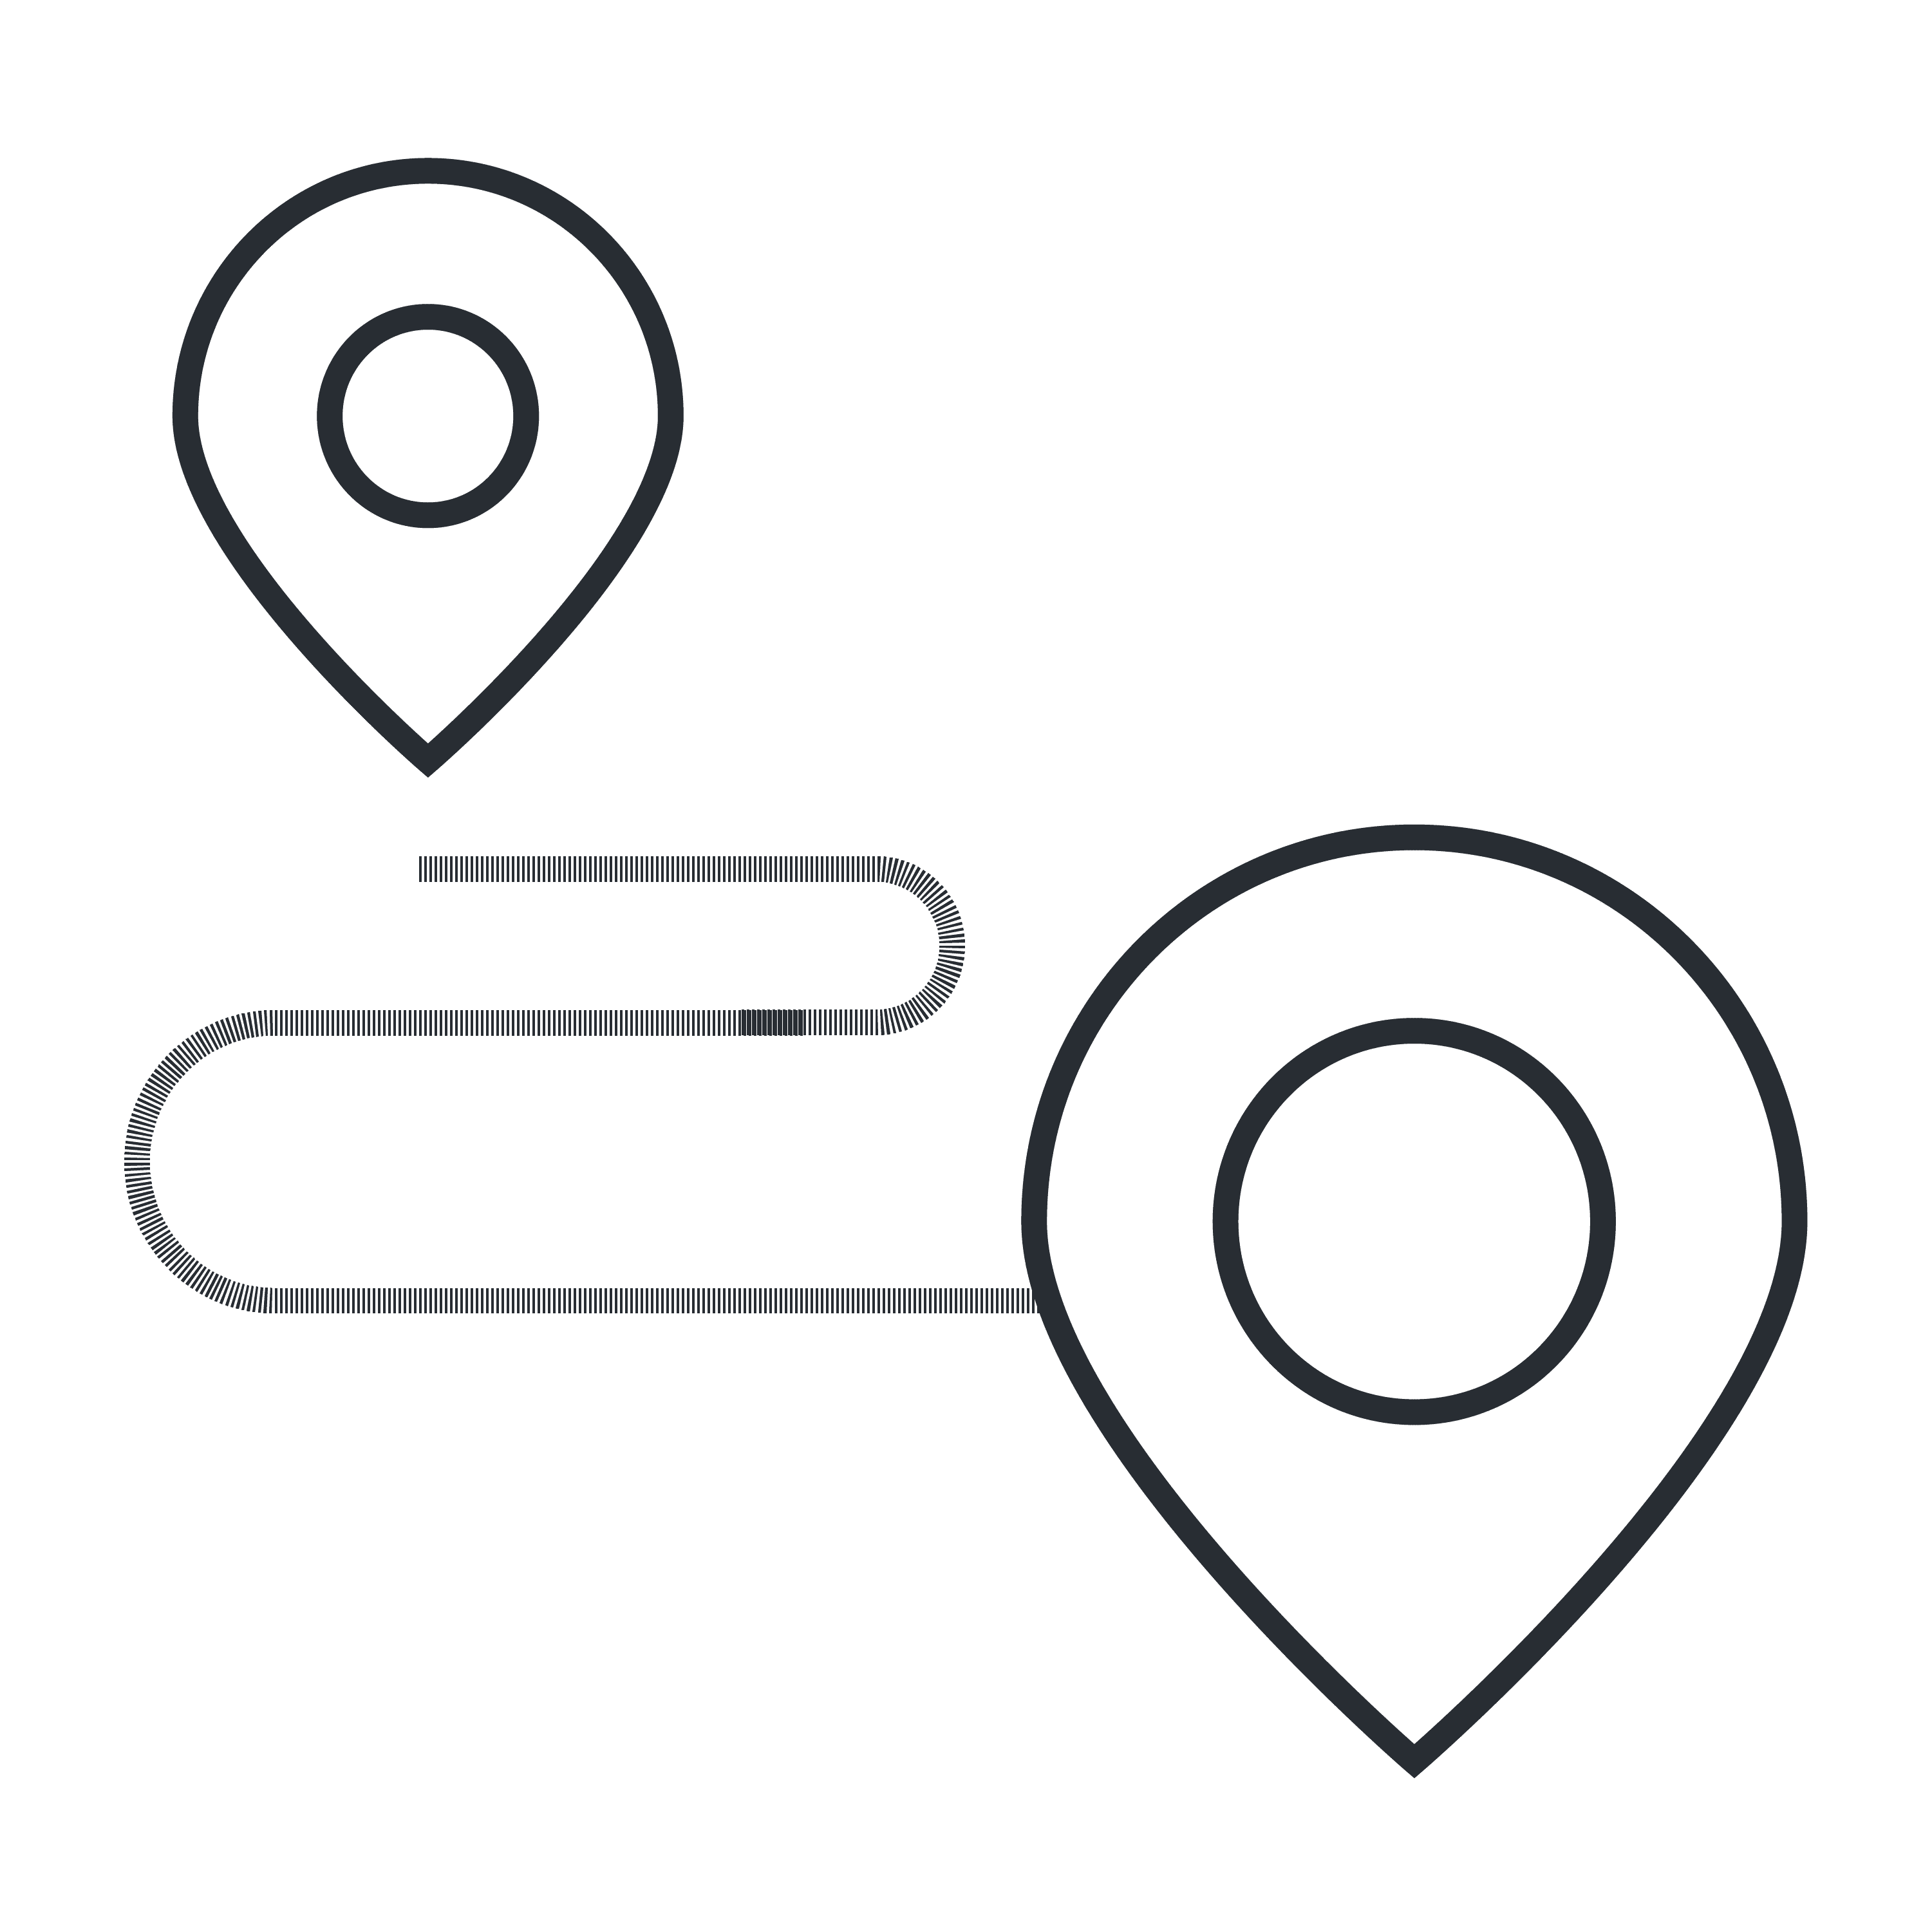 map_search_icon